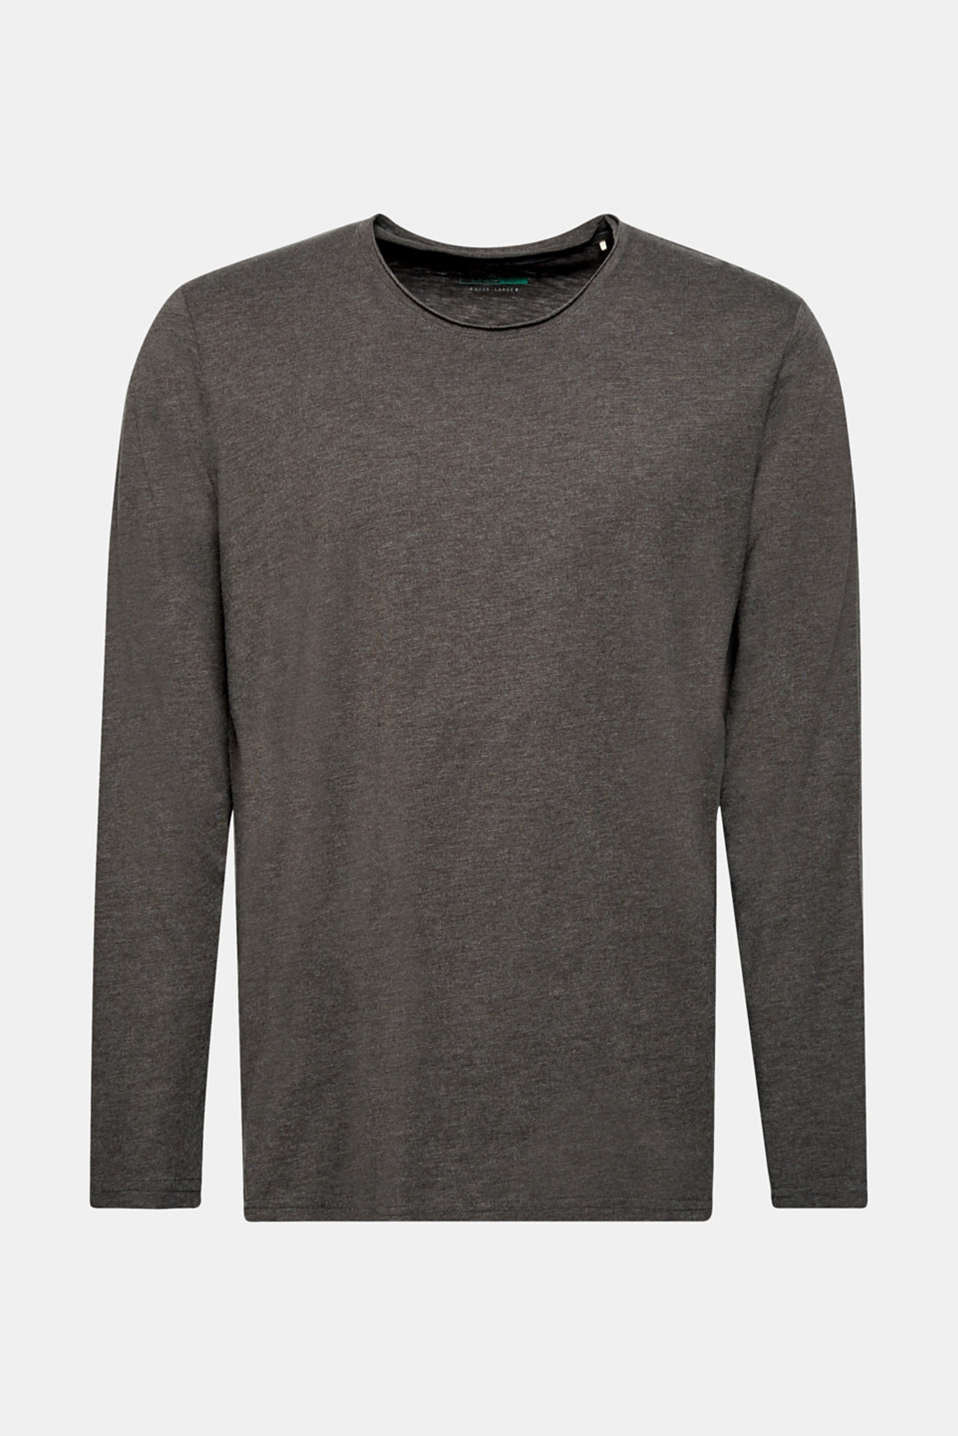 Slub jersey long sleeve top in blended cotton, ANTHRACITE, detail image number 7